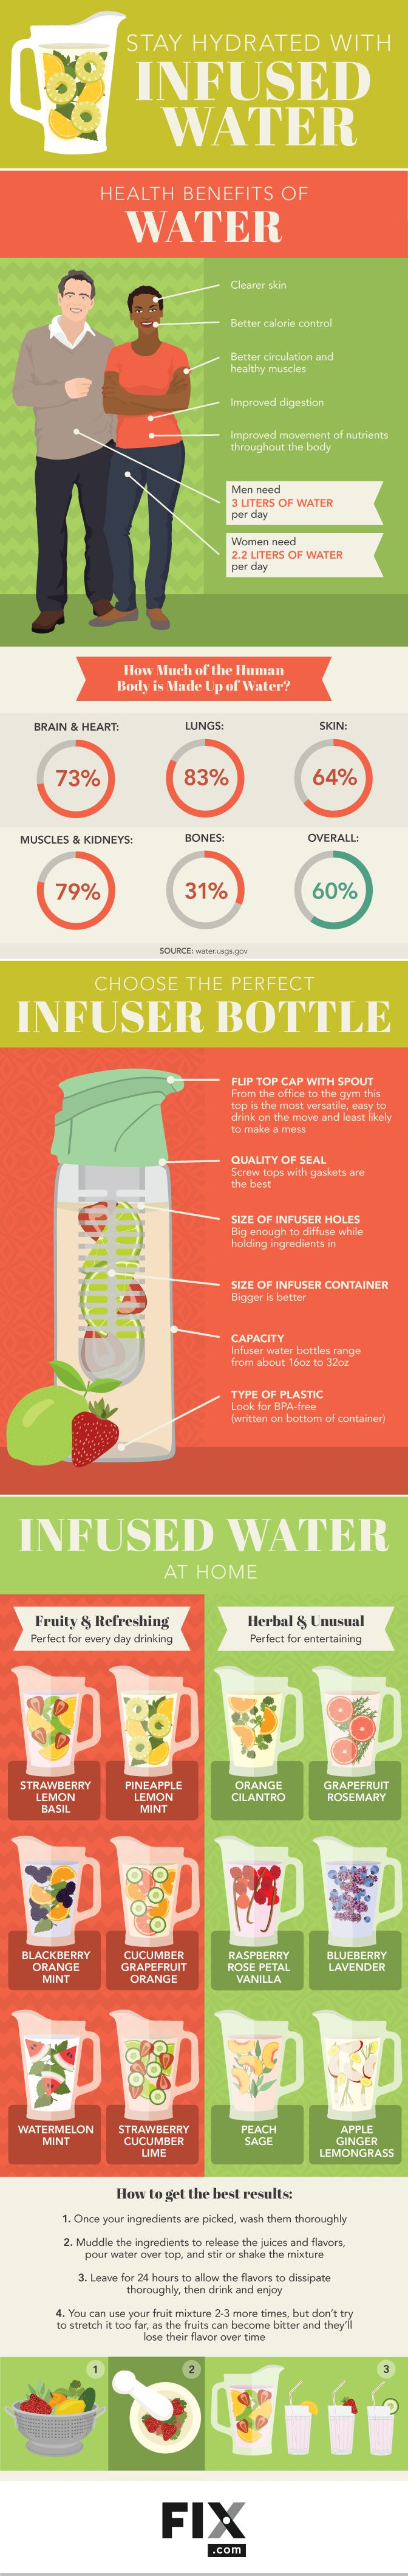 Drinking water is important for your health, so stay hydrated all year round with these delicious new infused water recipes!